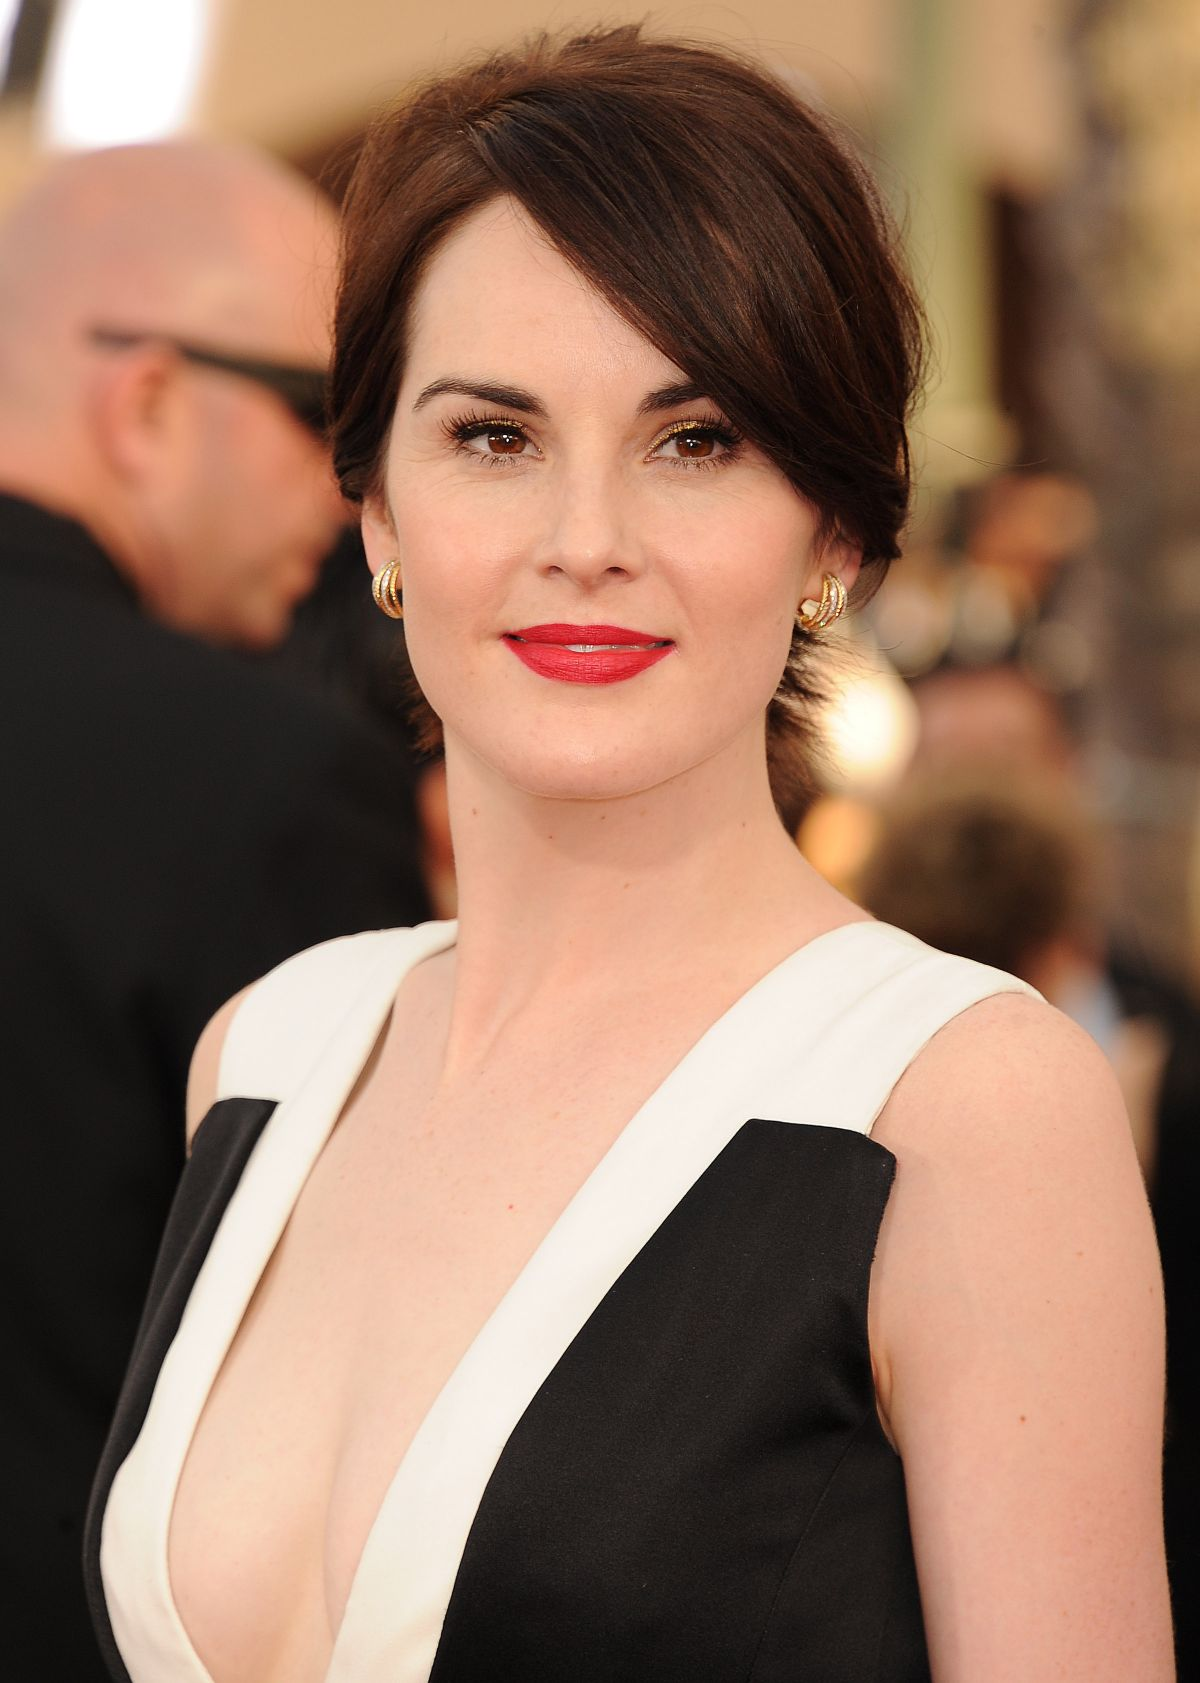 MICHELLE DOCKERY at 2014 SAG Awards in Los Angeles